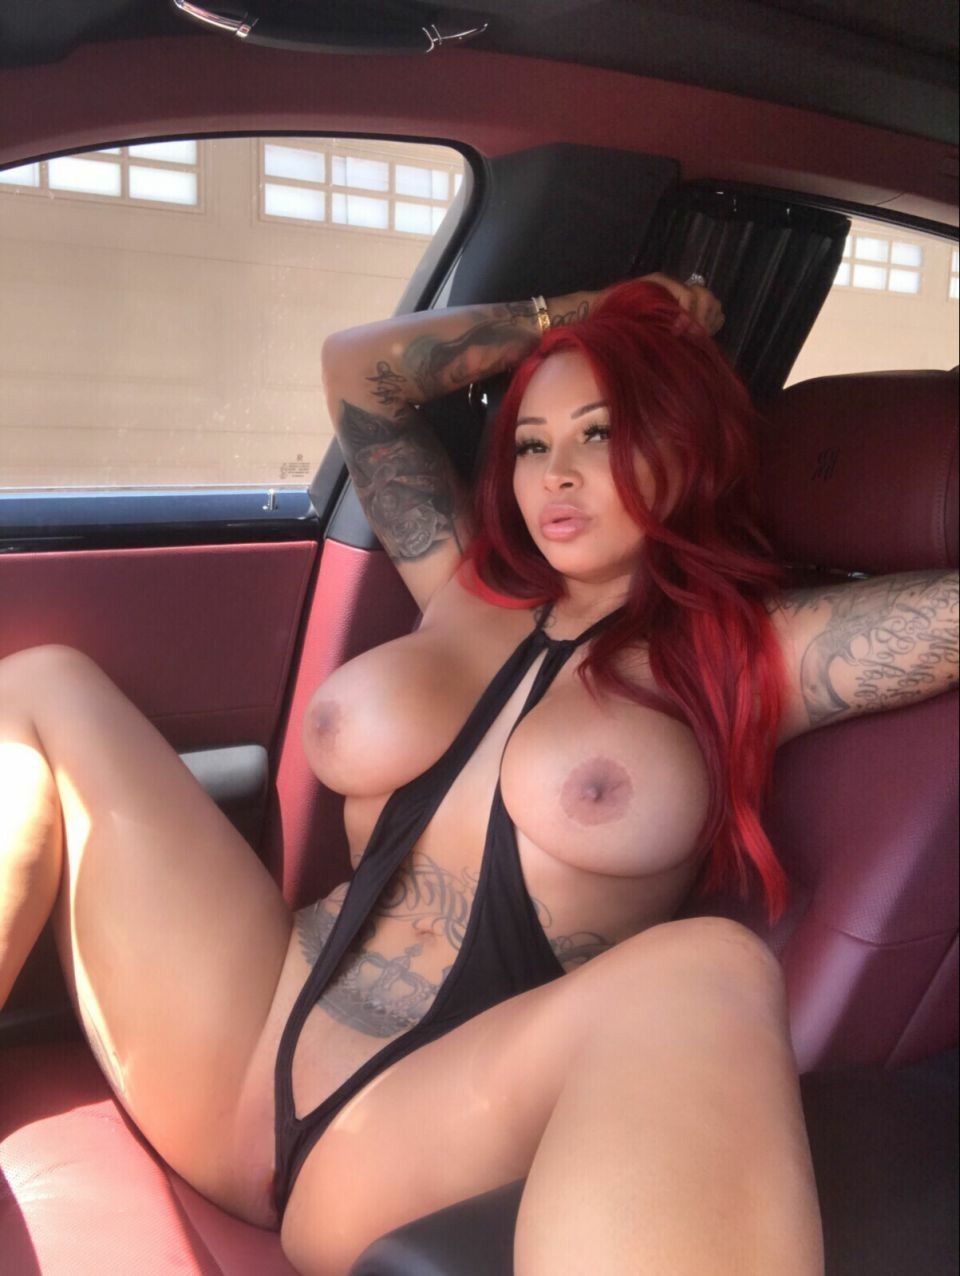 Brittanya campo nude pictures